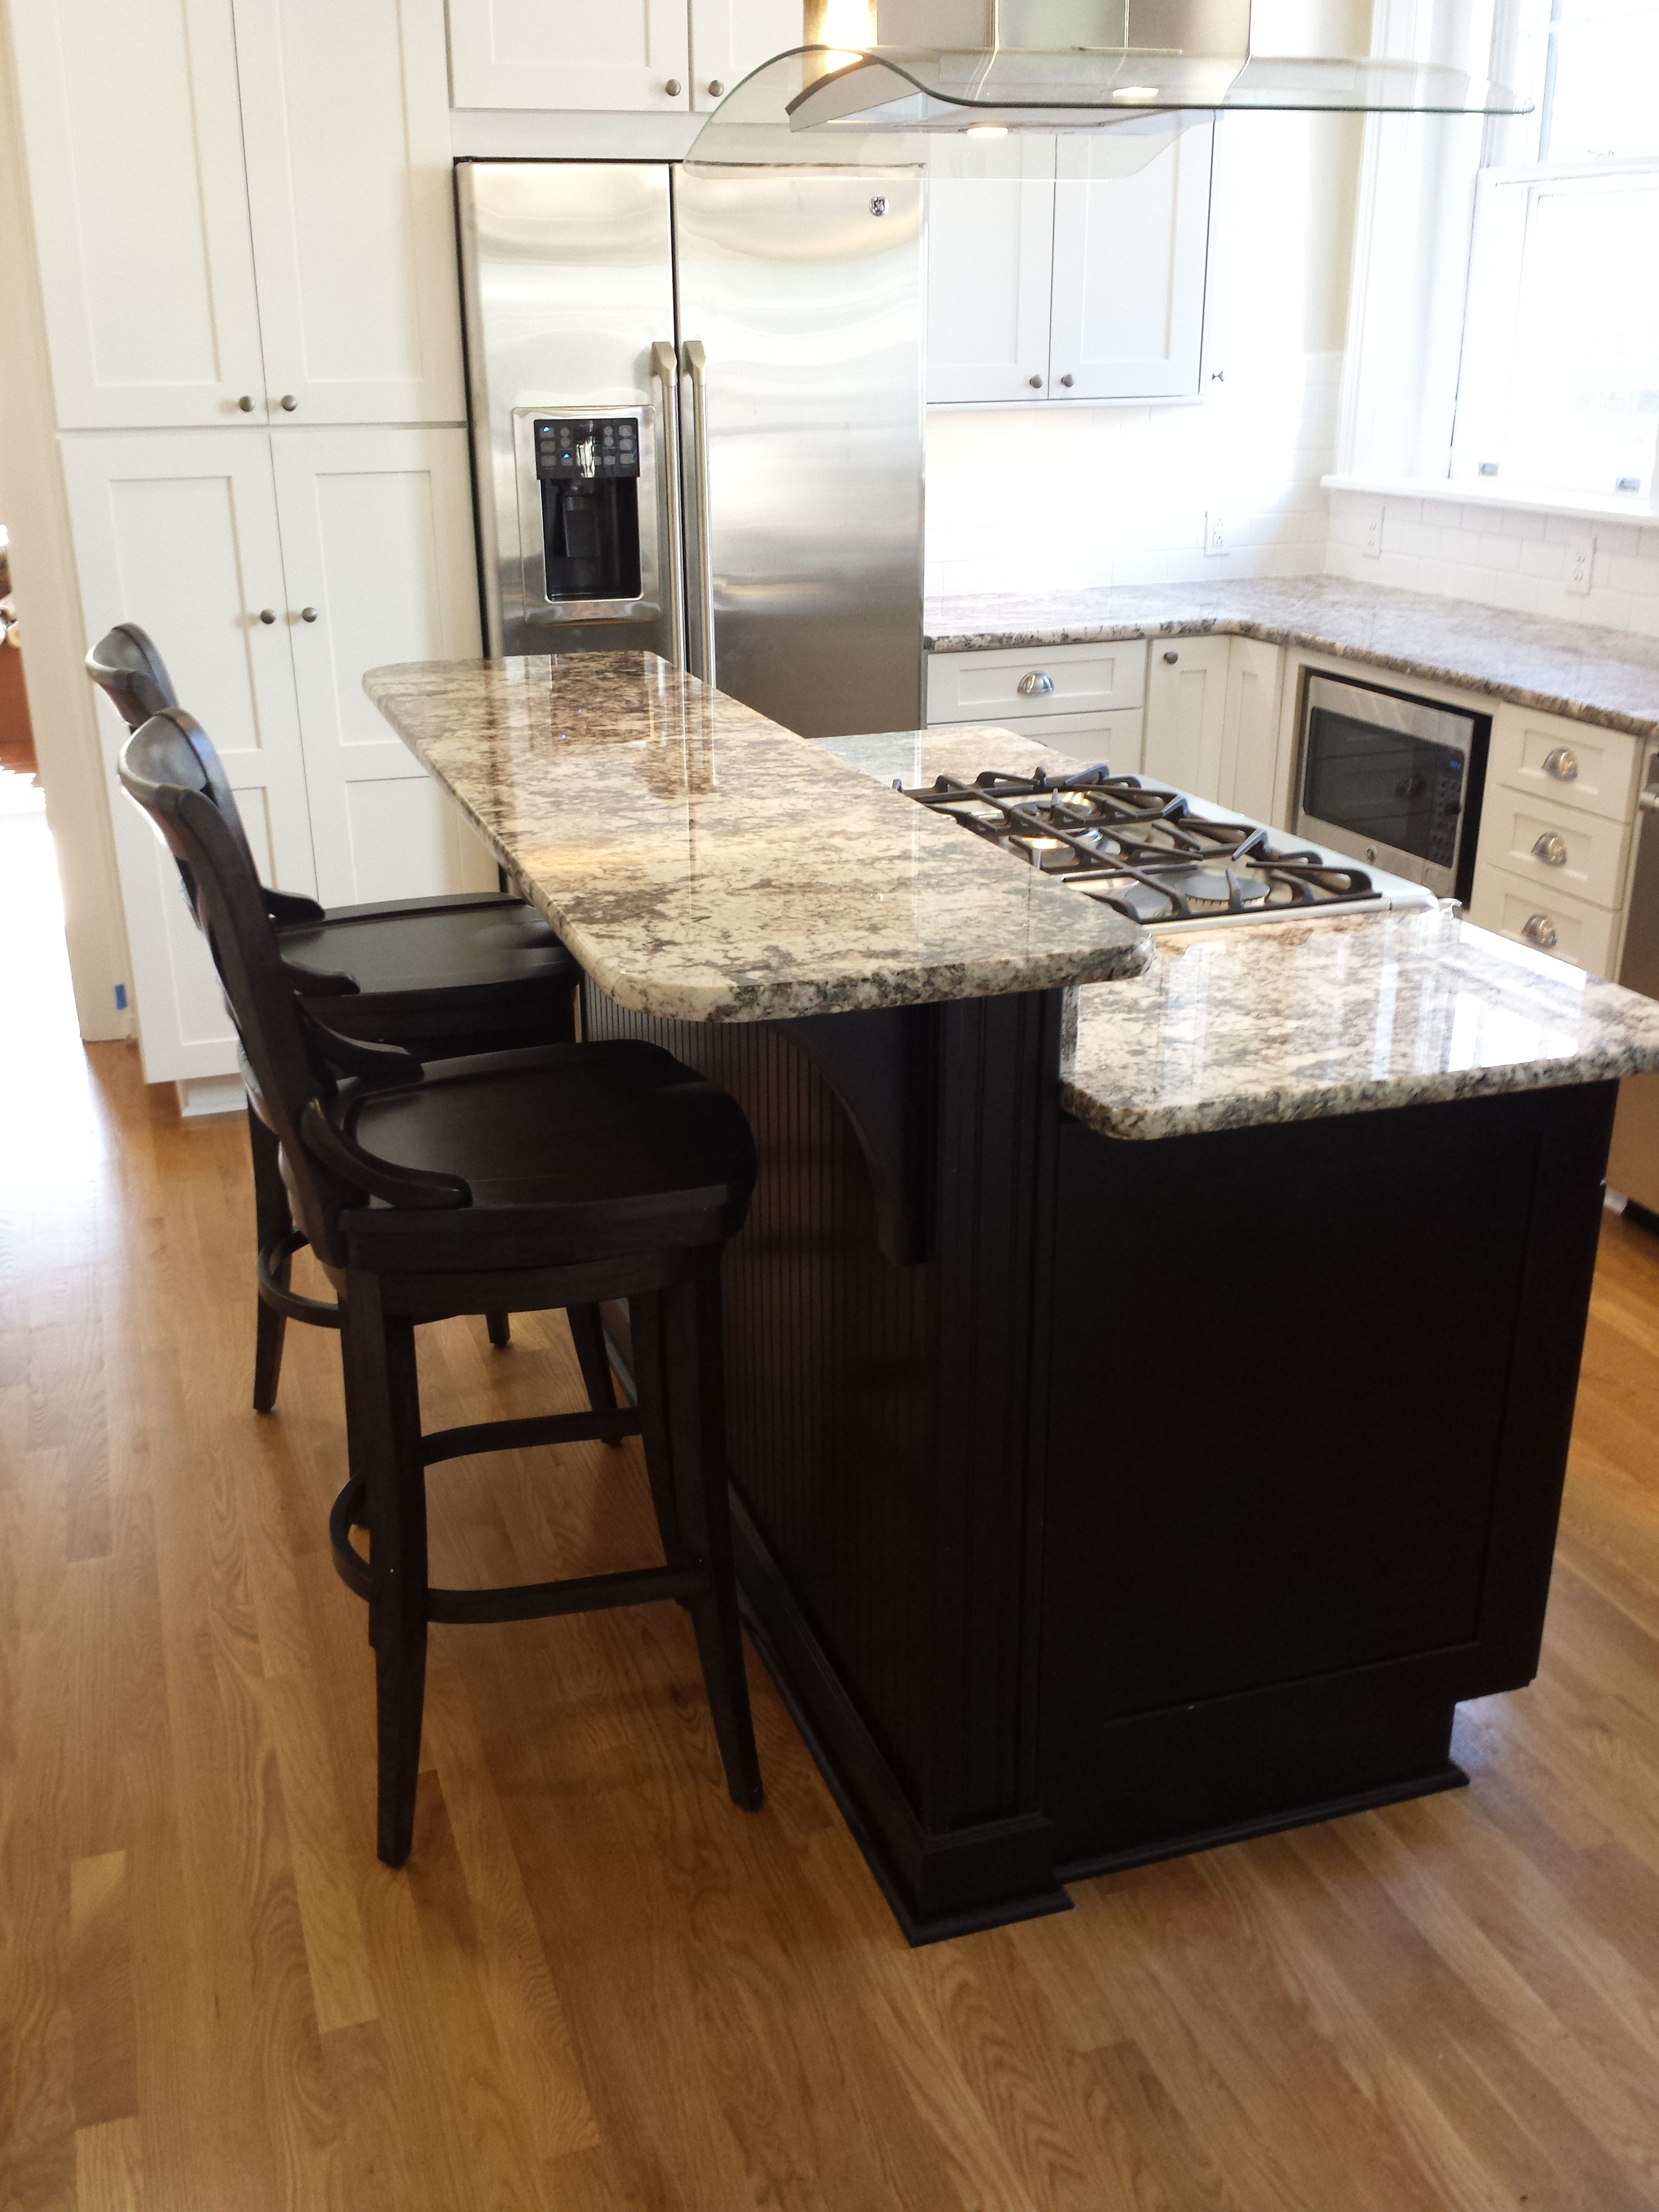 Kitchen Island Raised Bar With Waypoint Kitchen Cabinets Kitchen Island Cabinets Beautiful Kitchens Kitchen Island Raised Bar